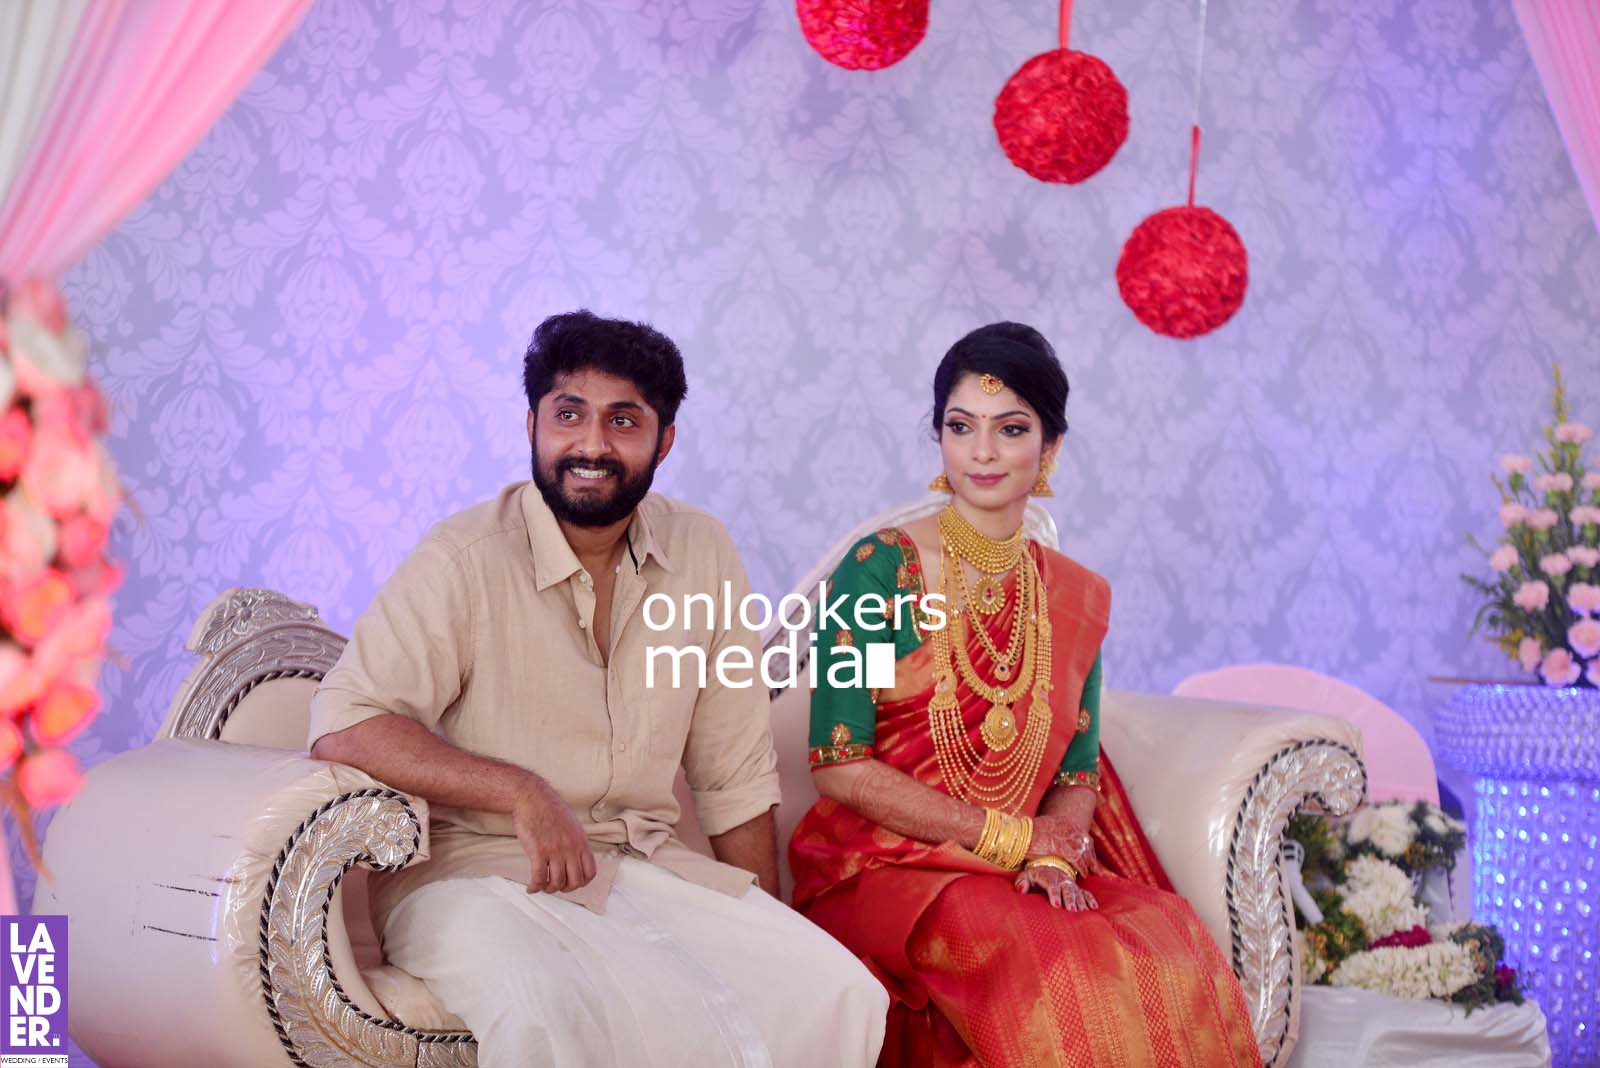 http://onlookersmedia.in/wp-content/uploads/2017/04/Dhyan-Sreenivasan-Wedding-Stills-Photos-23.jpg